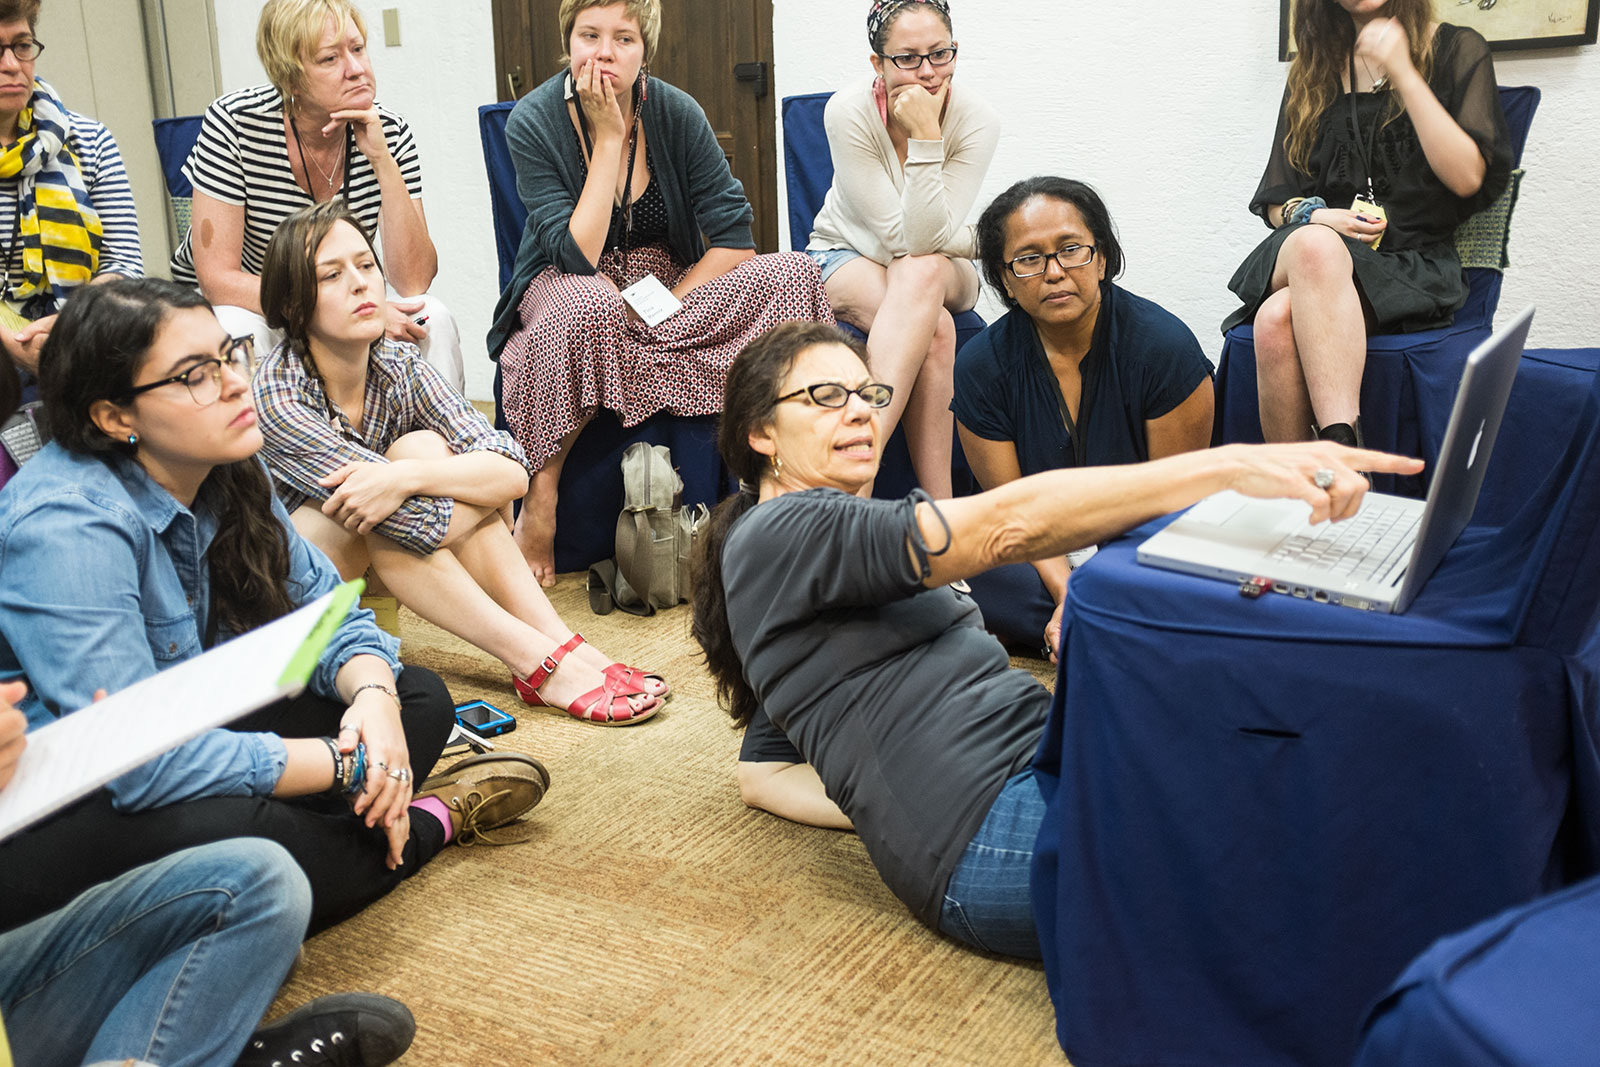 Foundry instructor Maggie Steber reviewing portfolios with her students on first day of workshop, July 21, 2014.jpg